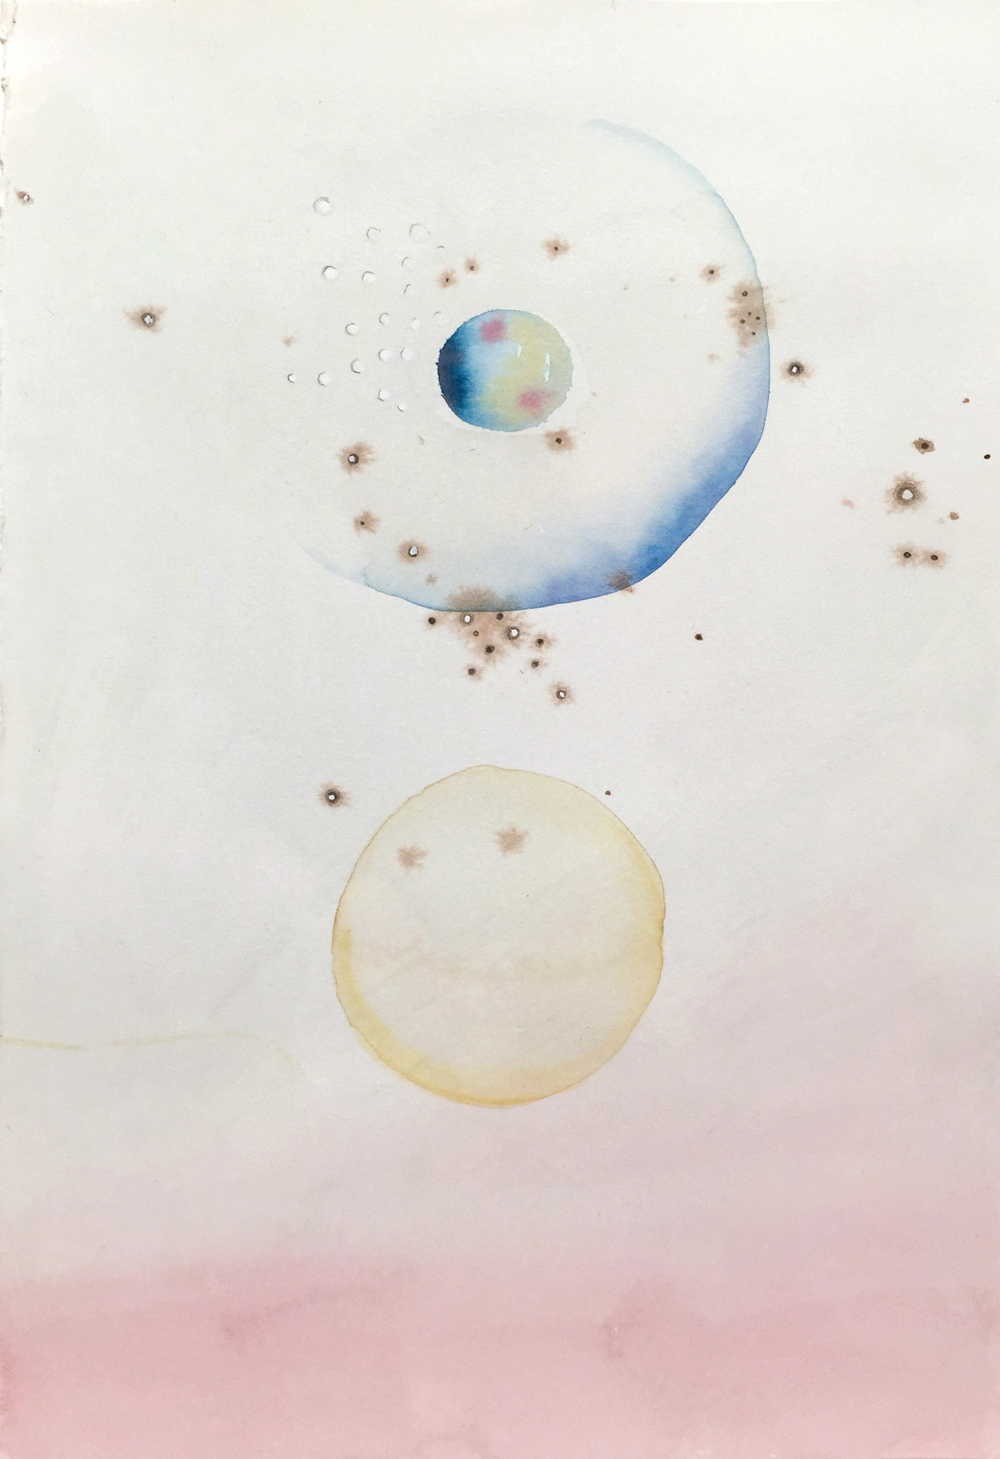 Gala Bent, Astronomy Group, 2015, watercolor and graphite on paper, 10.25 x 7 inches, $400.